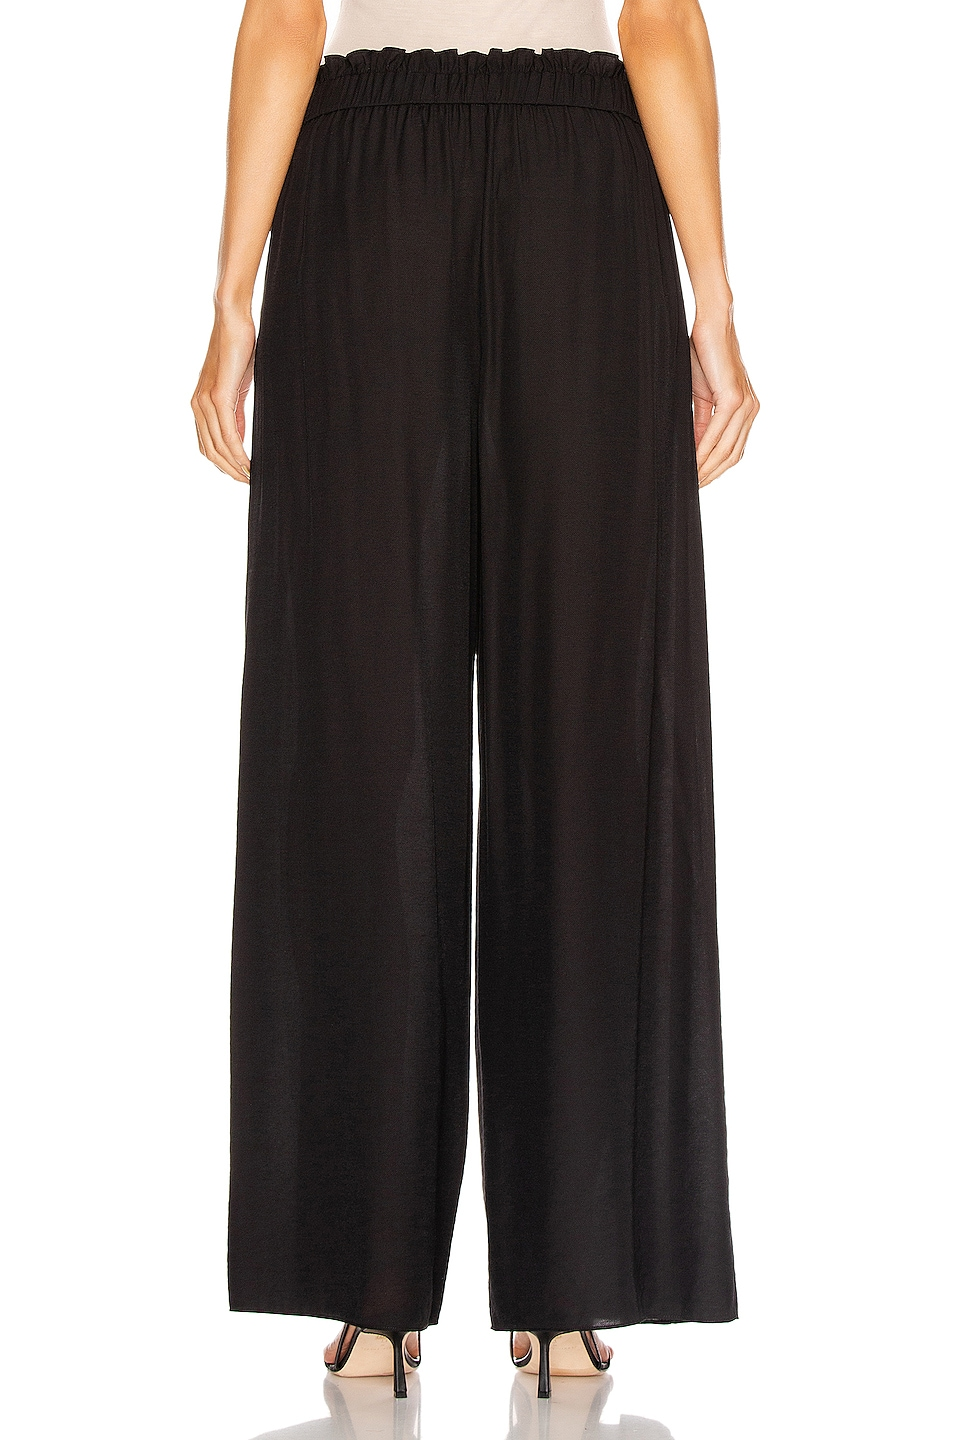 Image 4 of JONATHAN SIMKHAI Piped High Waisted Wide Leg Pant in Black